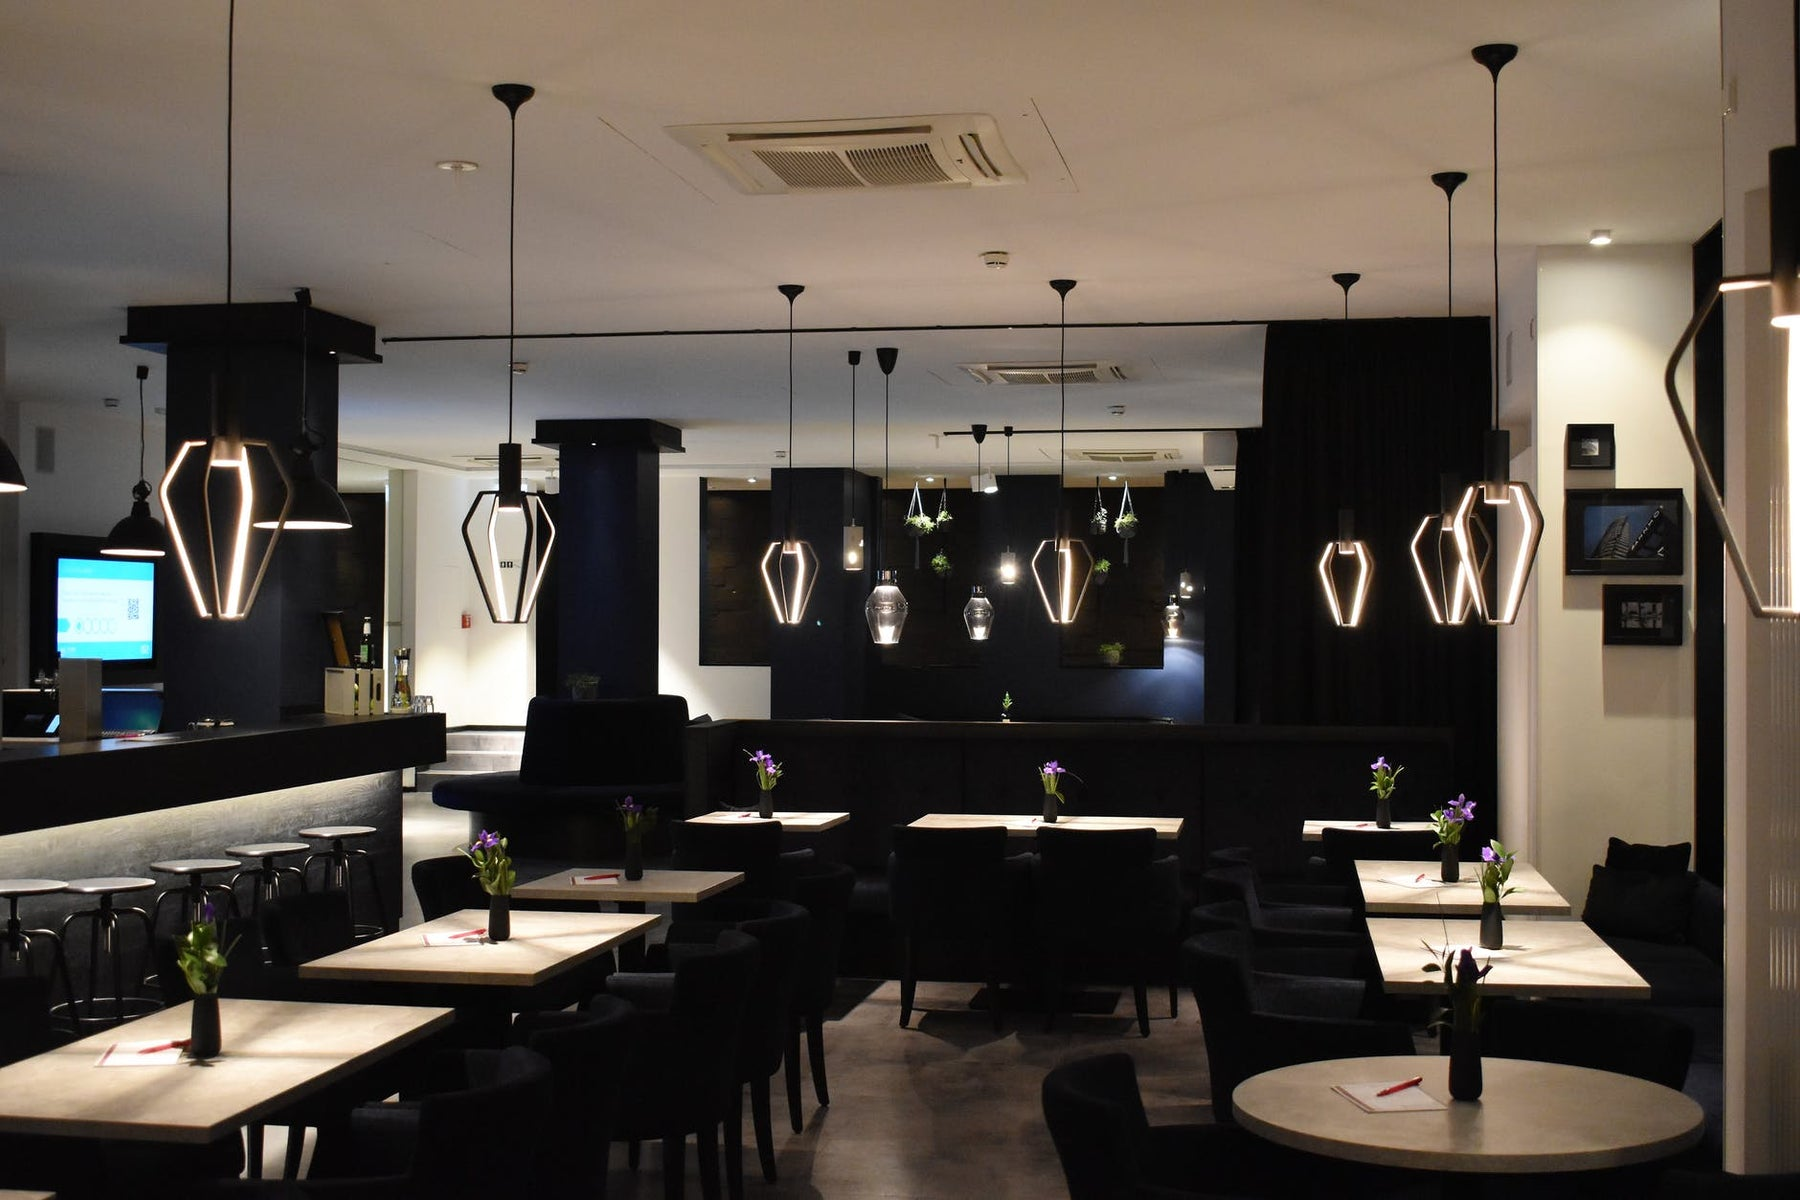 How Does LED Lighting Help in Lighting Your Restaurant?